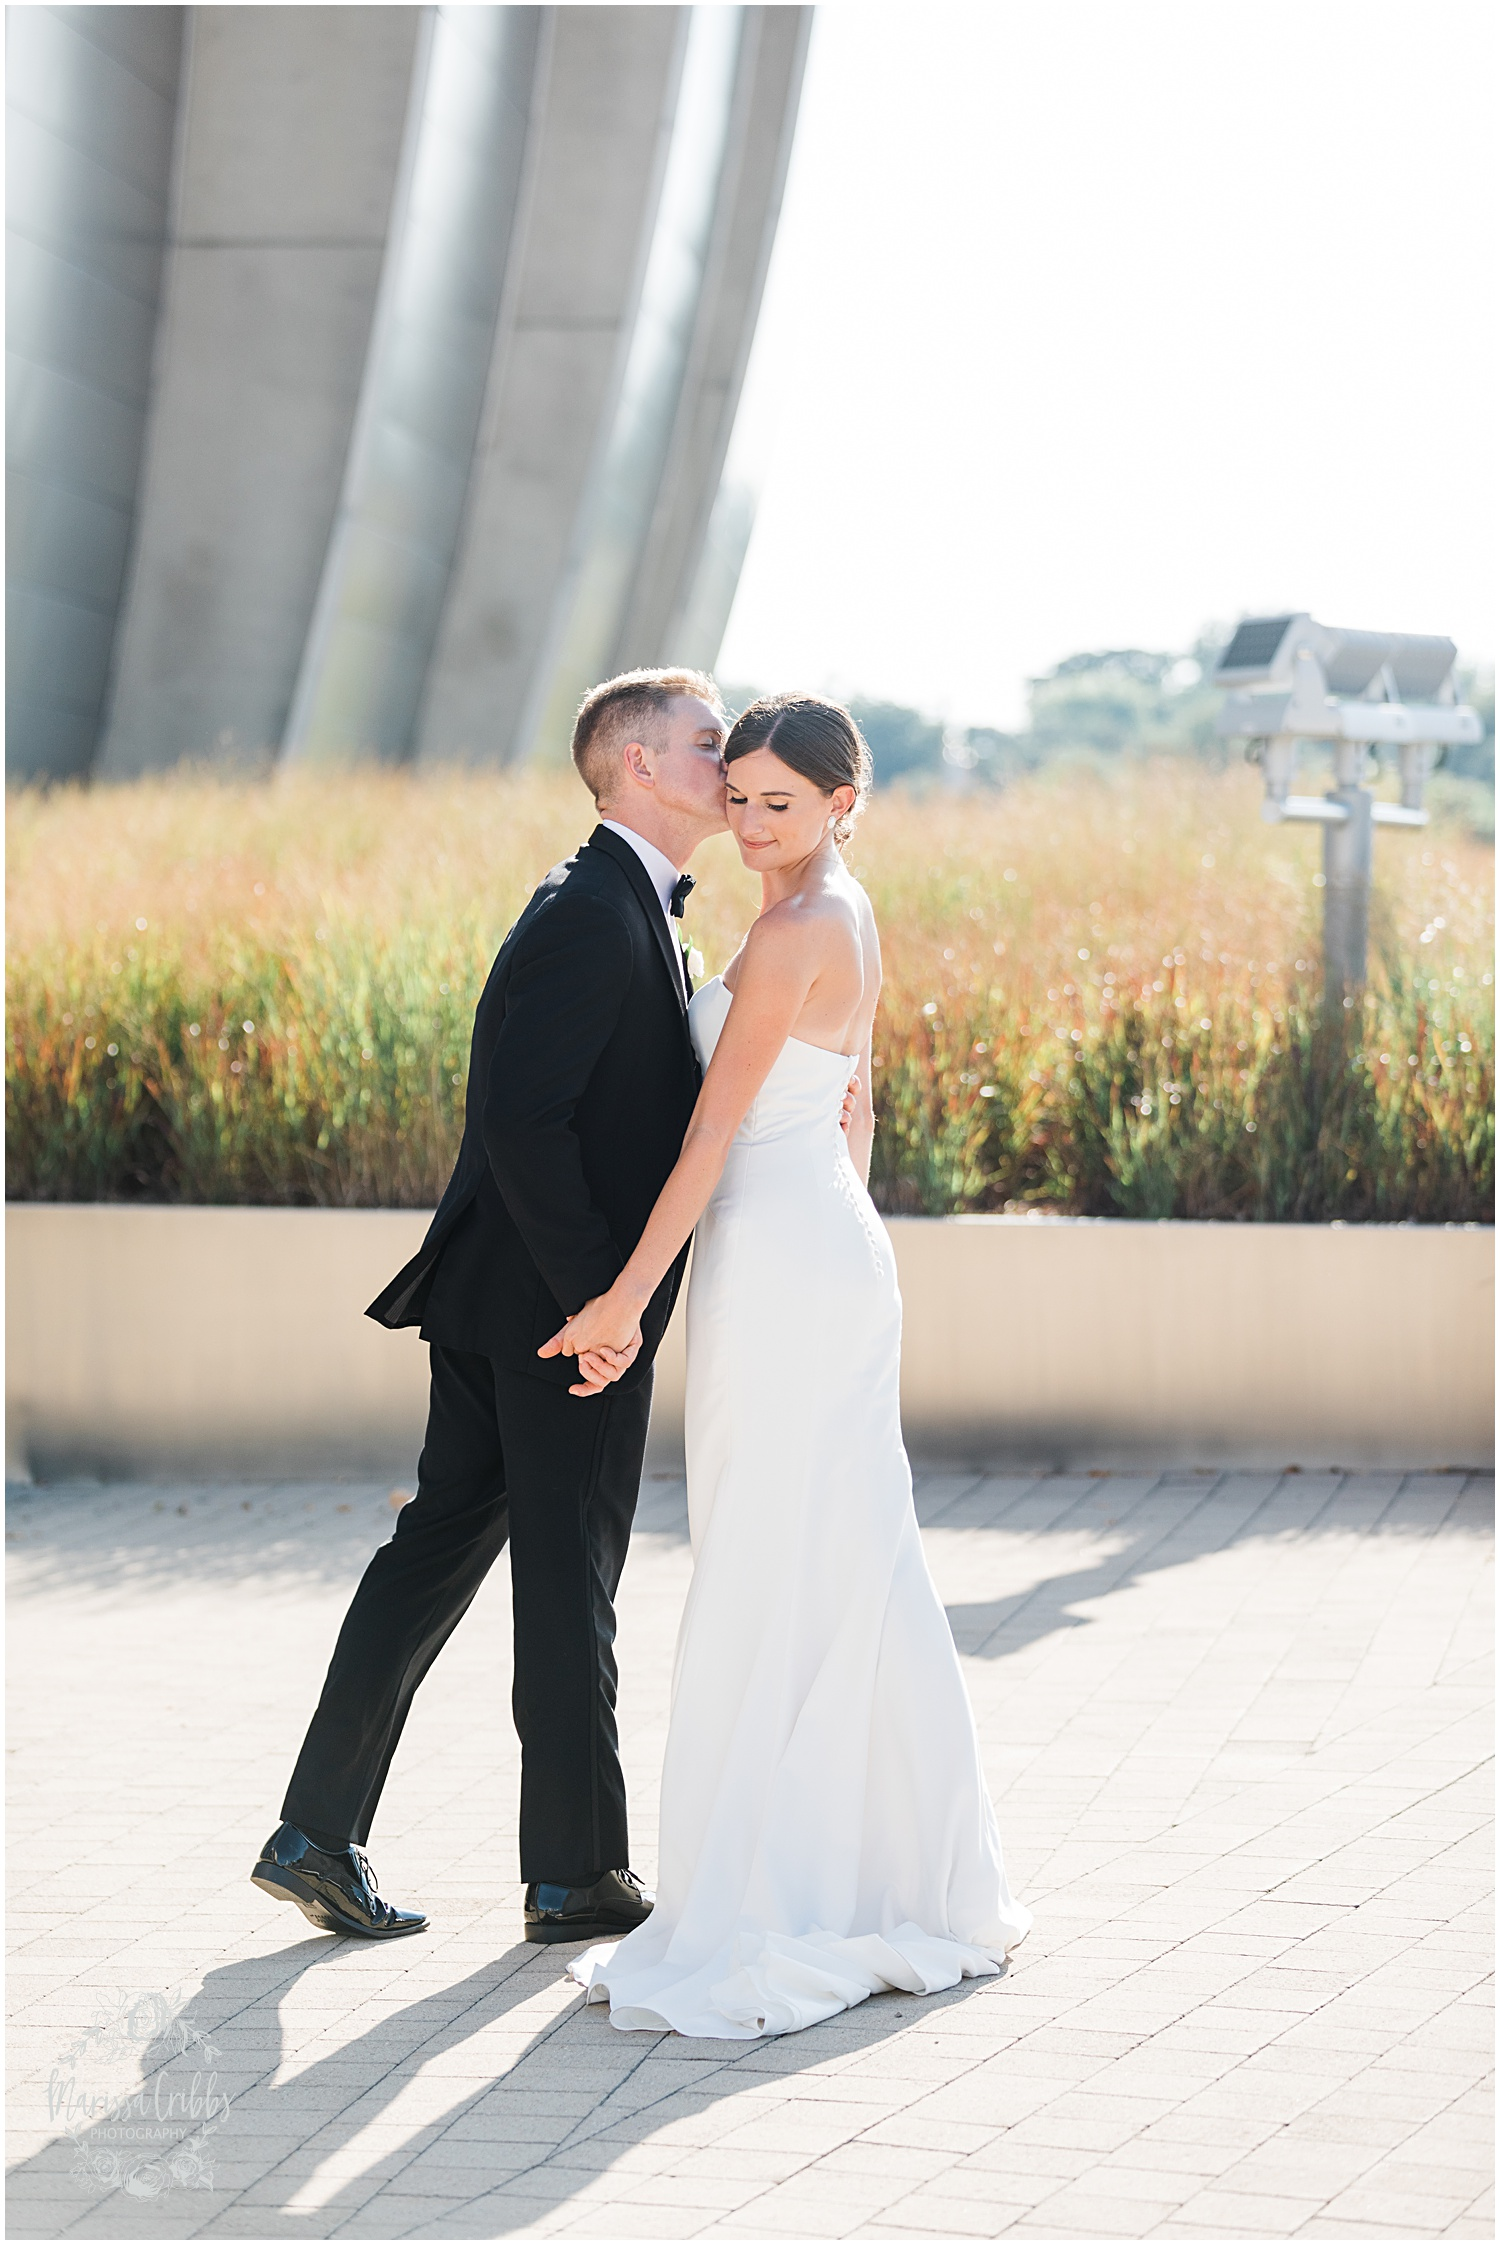 JOANNE & GEORGE MARRIED BLOG | MARISSA CRIBBS PHOTOGRAPHY | THE ABBOTT | KANSAS CITY WEDDING PHOTOS_9104.jpg